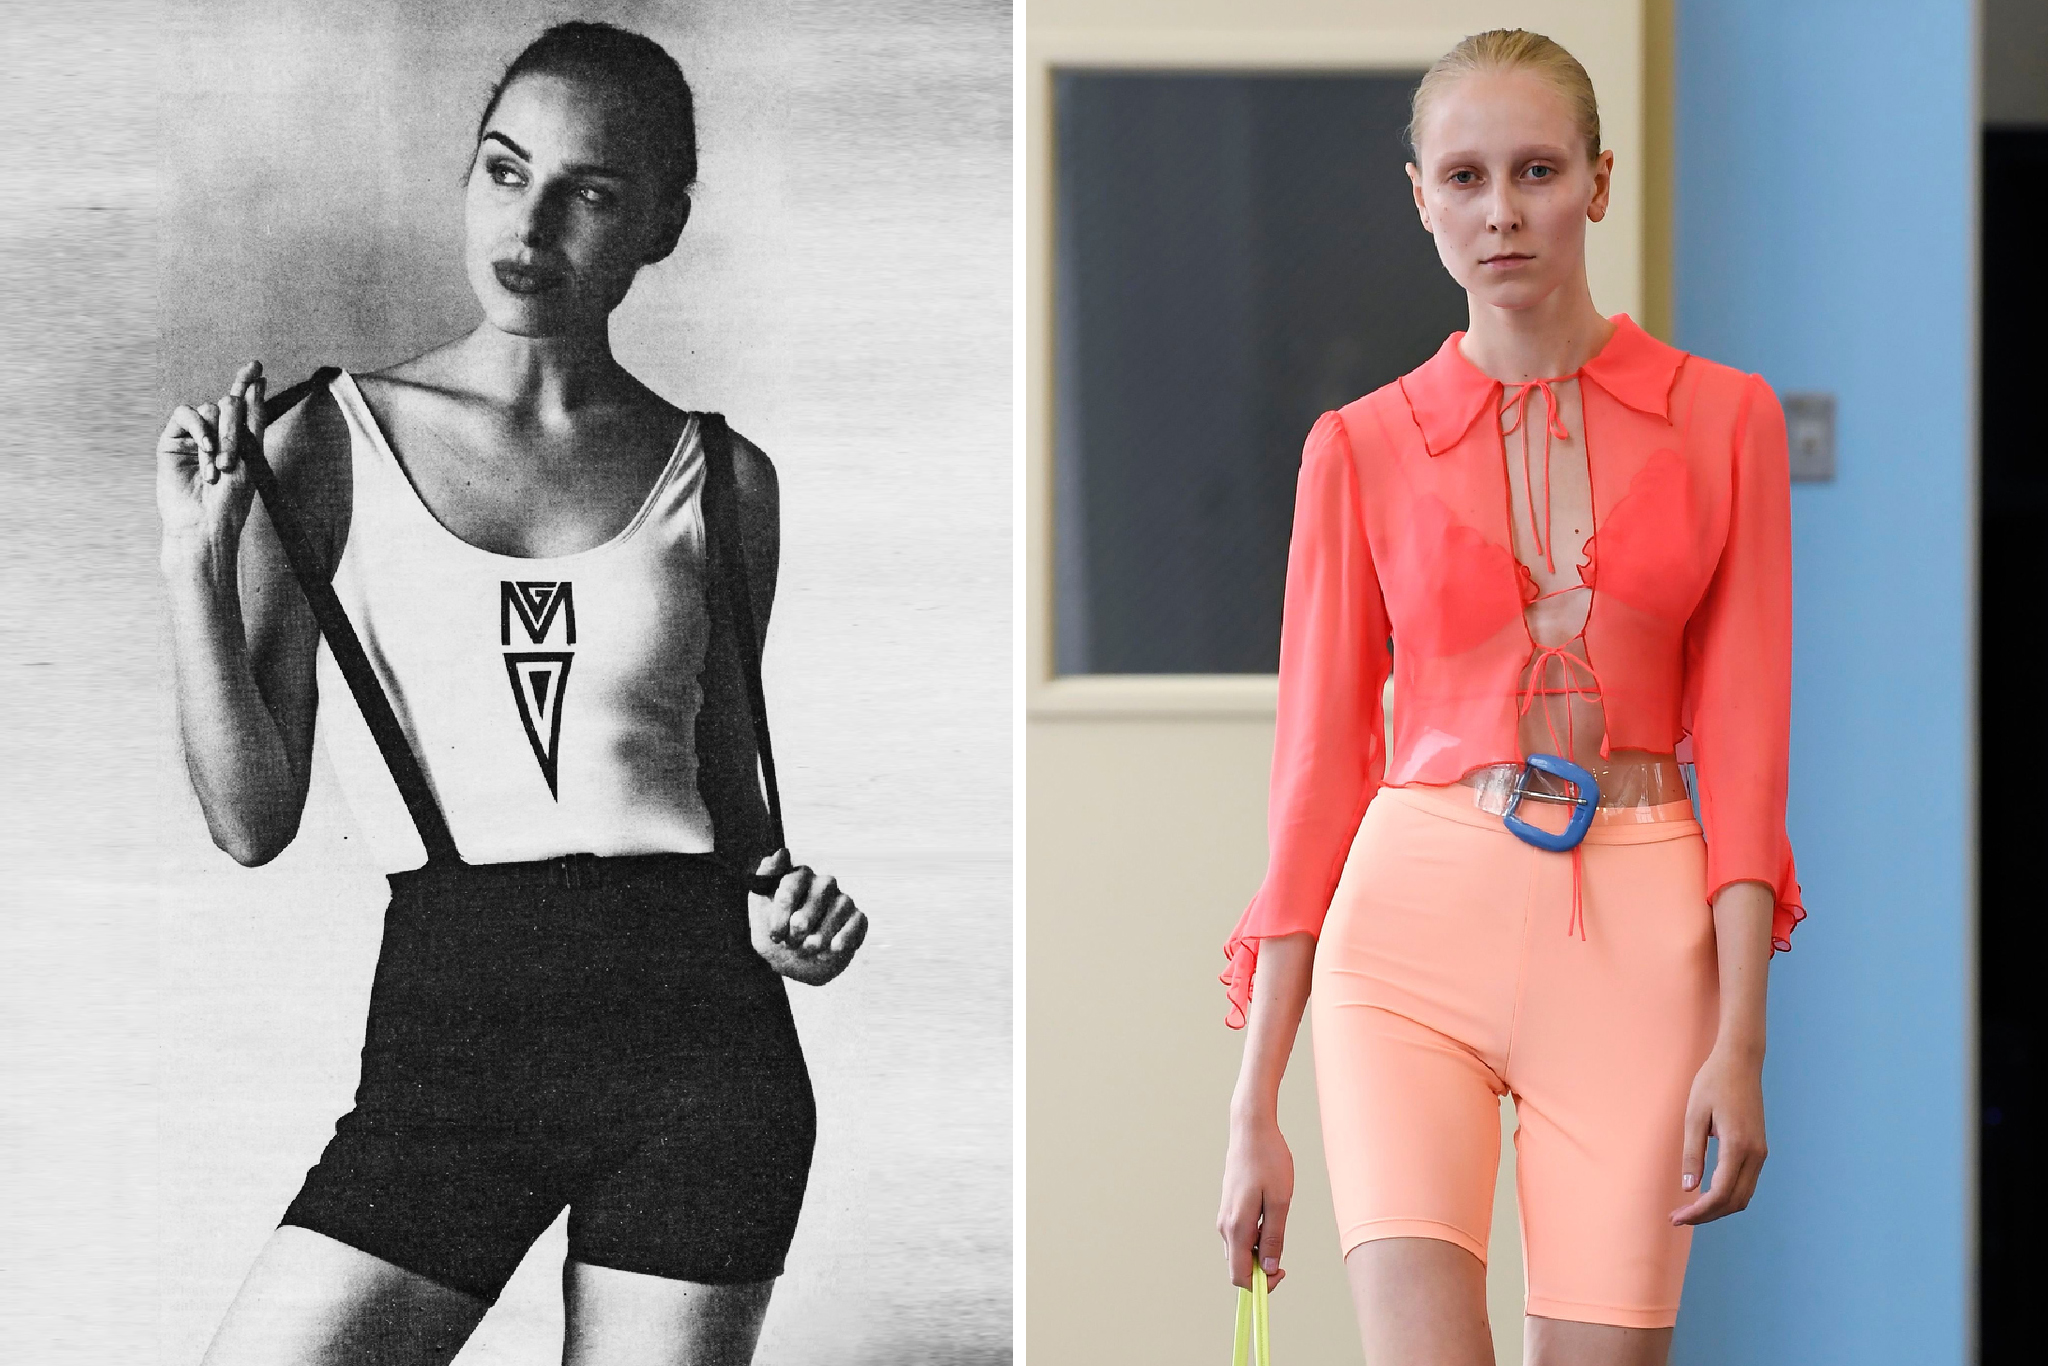 Gilda Marx's bicycle shorts pictured in WWD in February 1993 (left) and Maryam Nassir Zadeh RTW Spring 2019